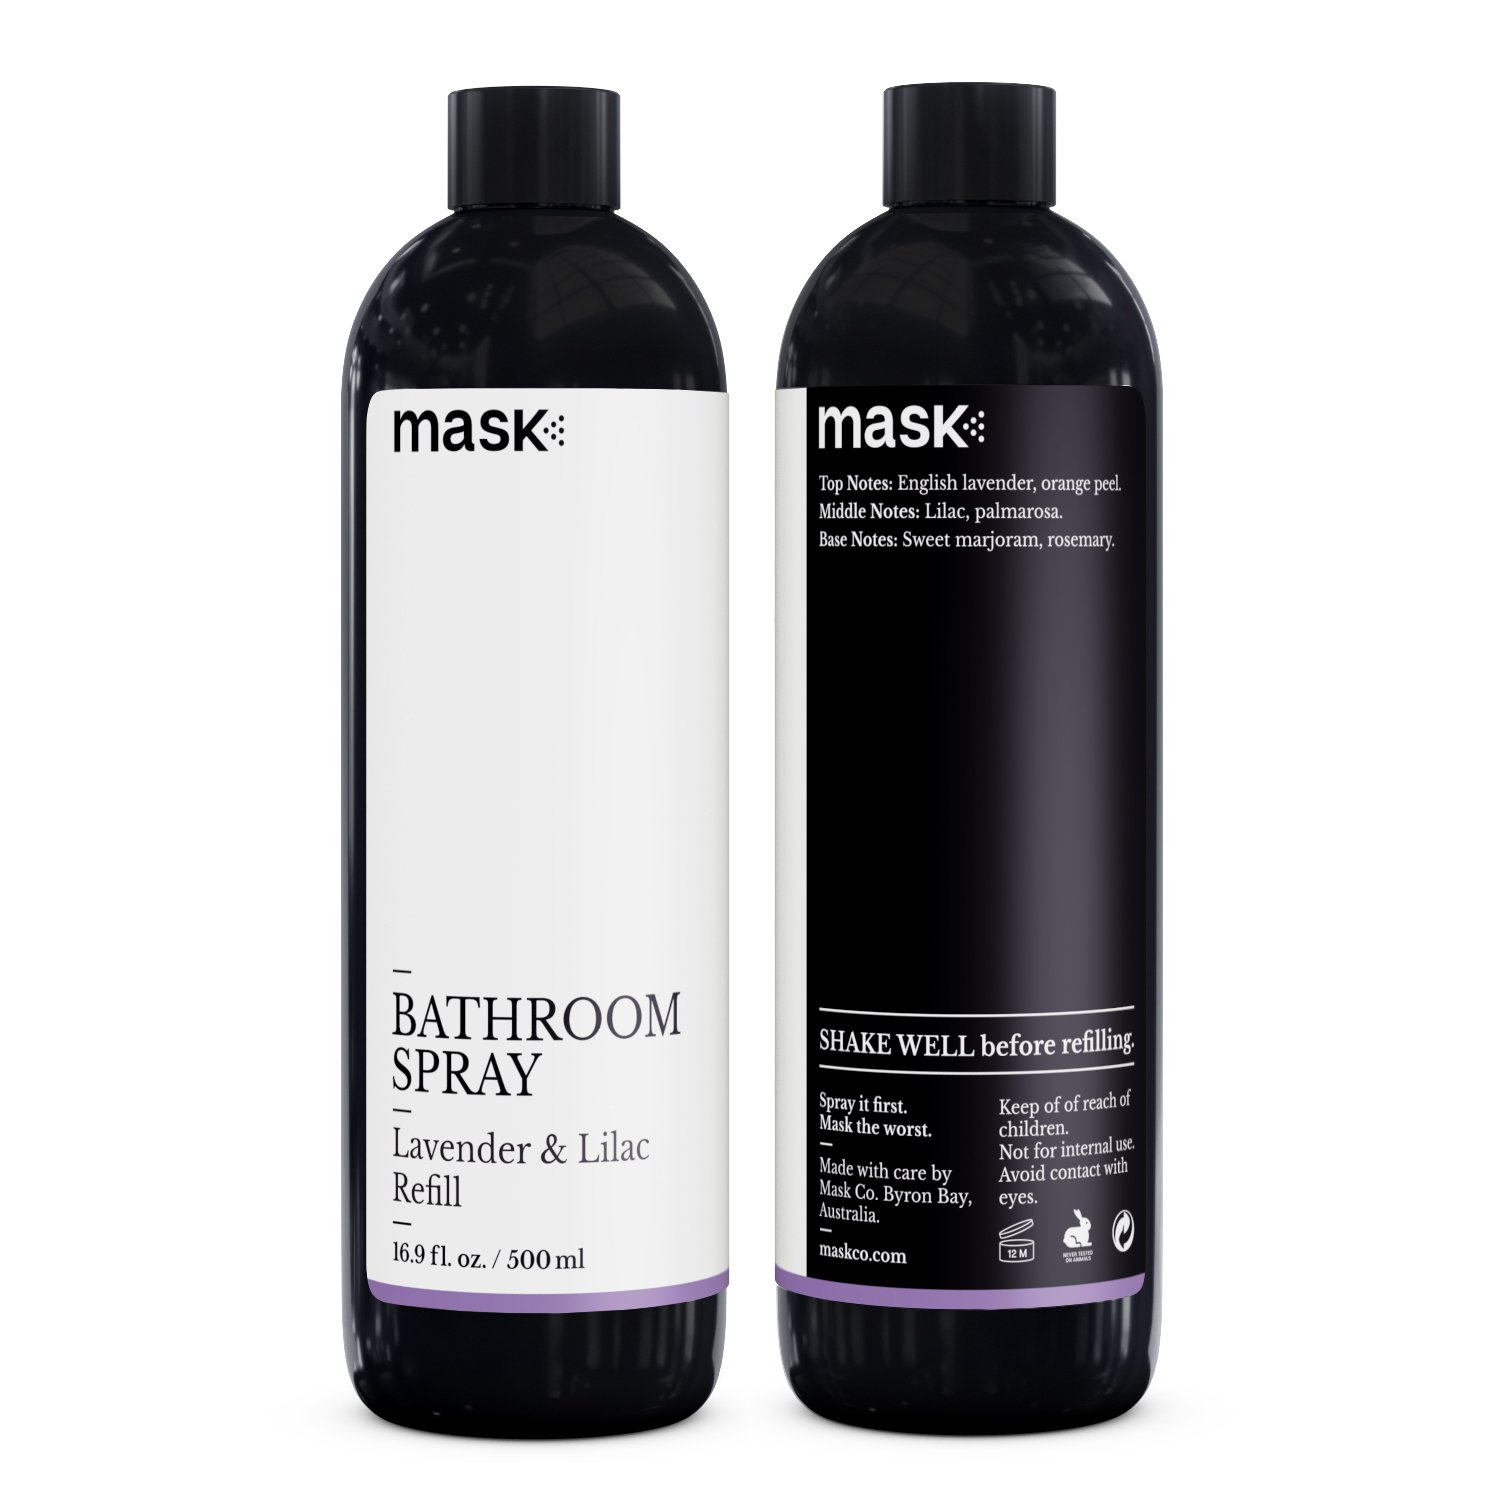 Mask Bathroom Spray Lavender and Lilac 16-Ounce Refill, Toilet Spray, Before You Go Deodorizer, Best Value Air Freshener Poo Poop Spray, Perfect for Travel, Risk Free Offer! by Mask (Image #2)